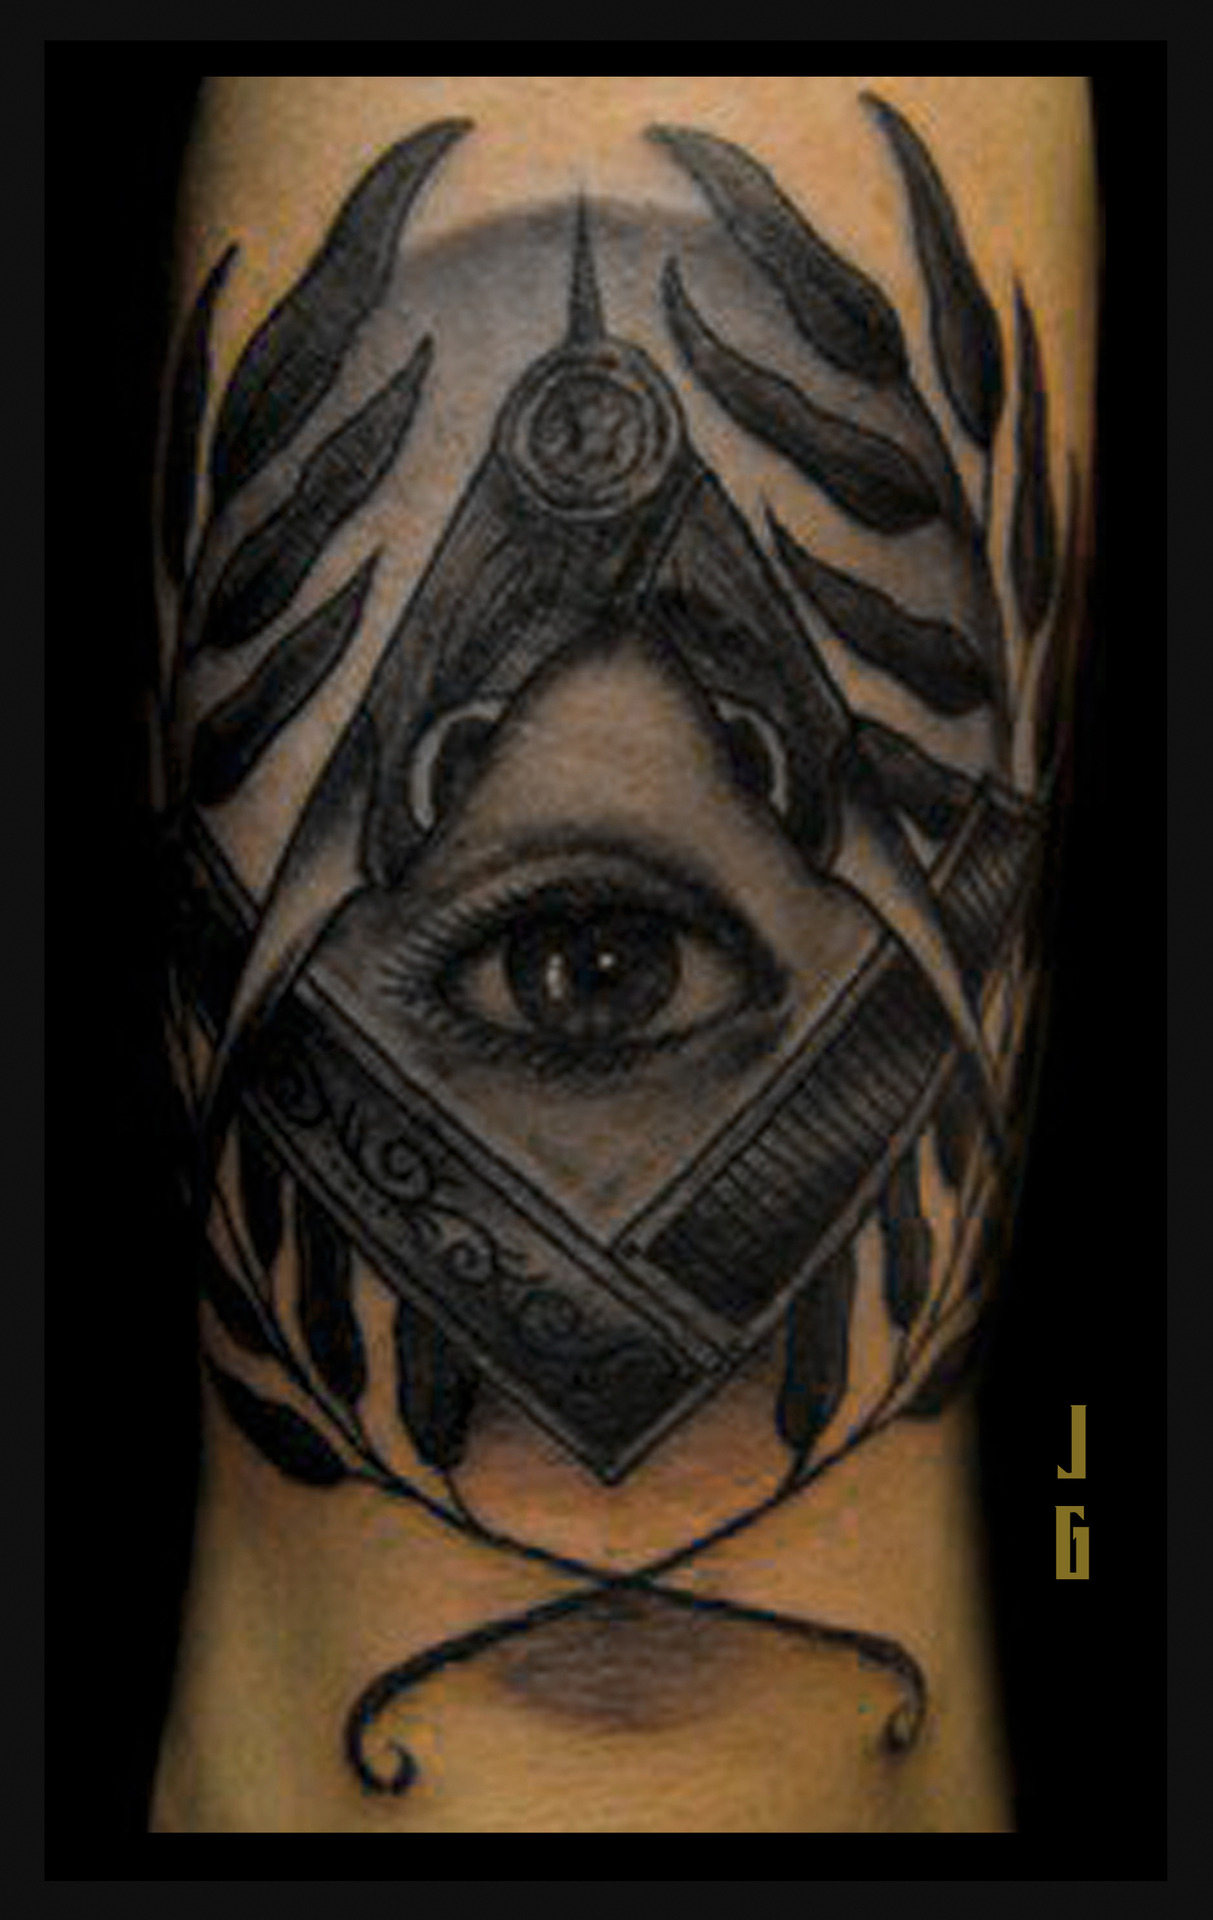 Illuminati Tattoo Sleeve Dark ink illuminati eye tattooIlluminati Tattoo Sleeve